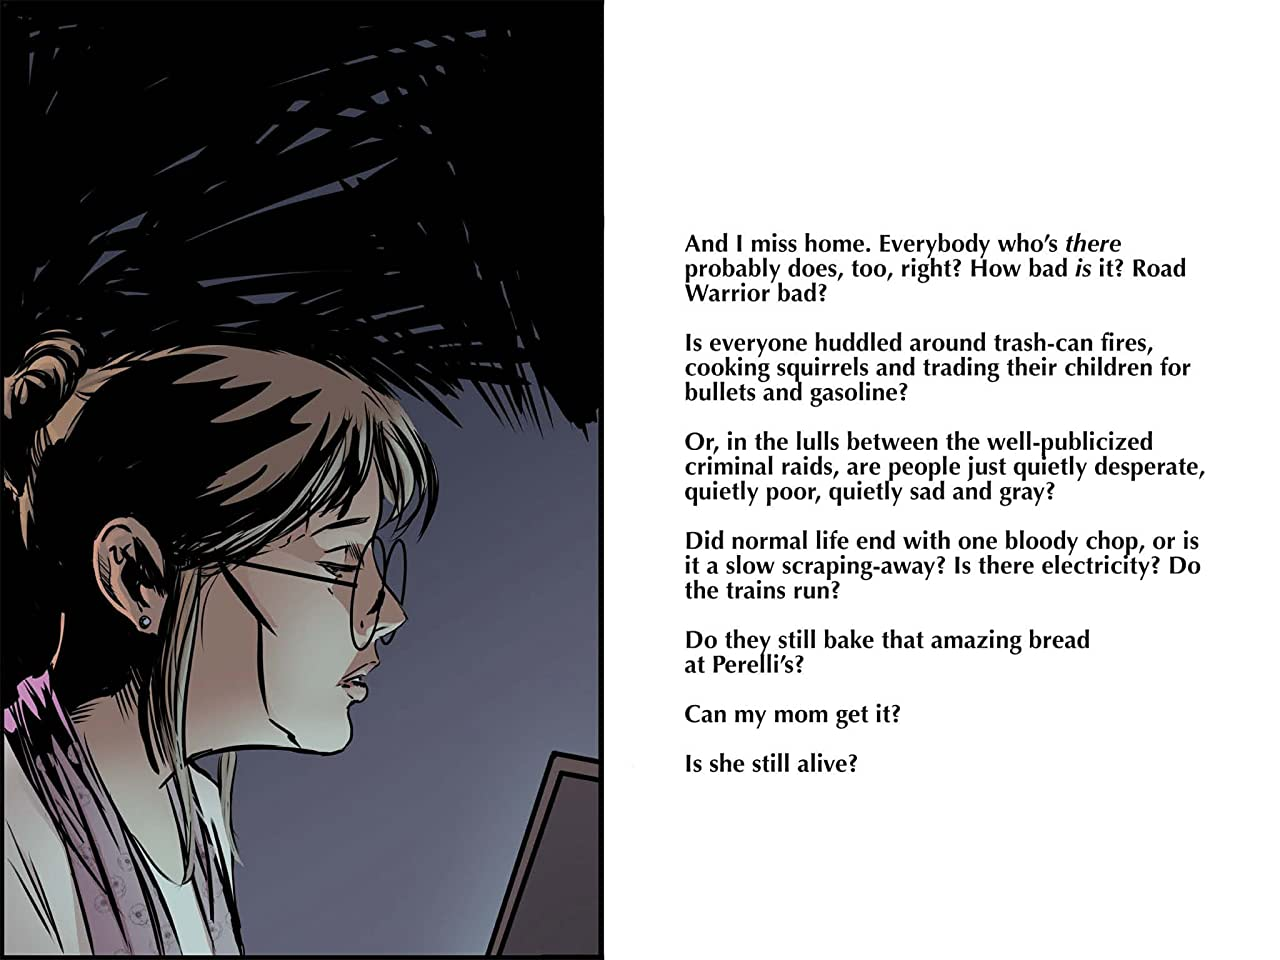 Insufferable: On the Road #7